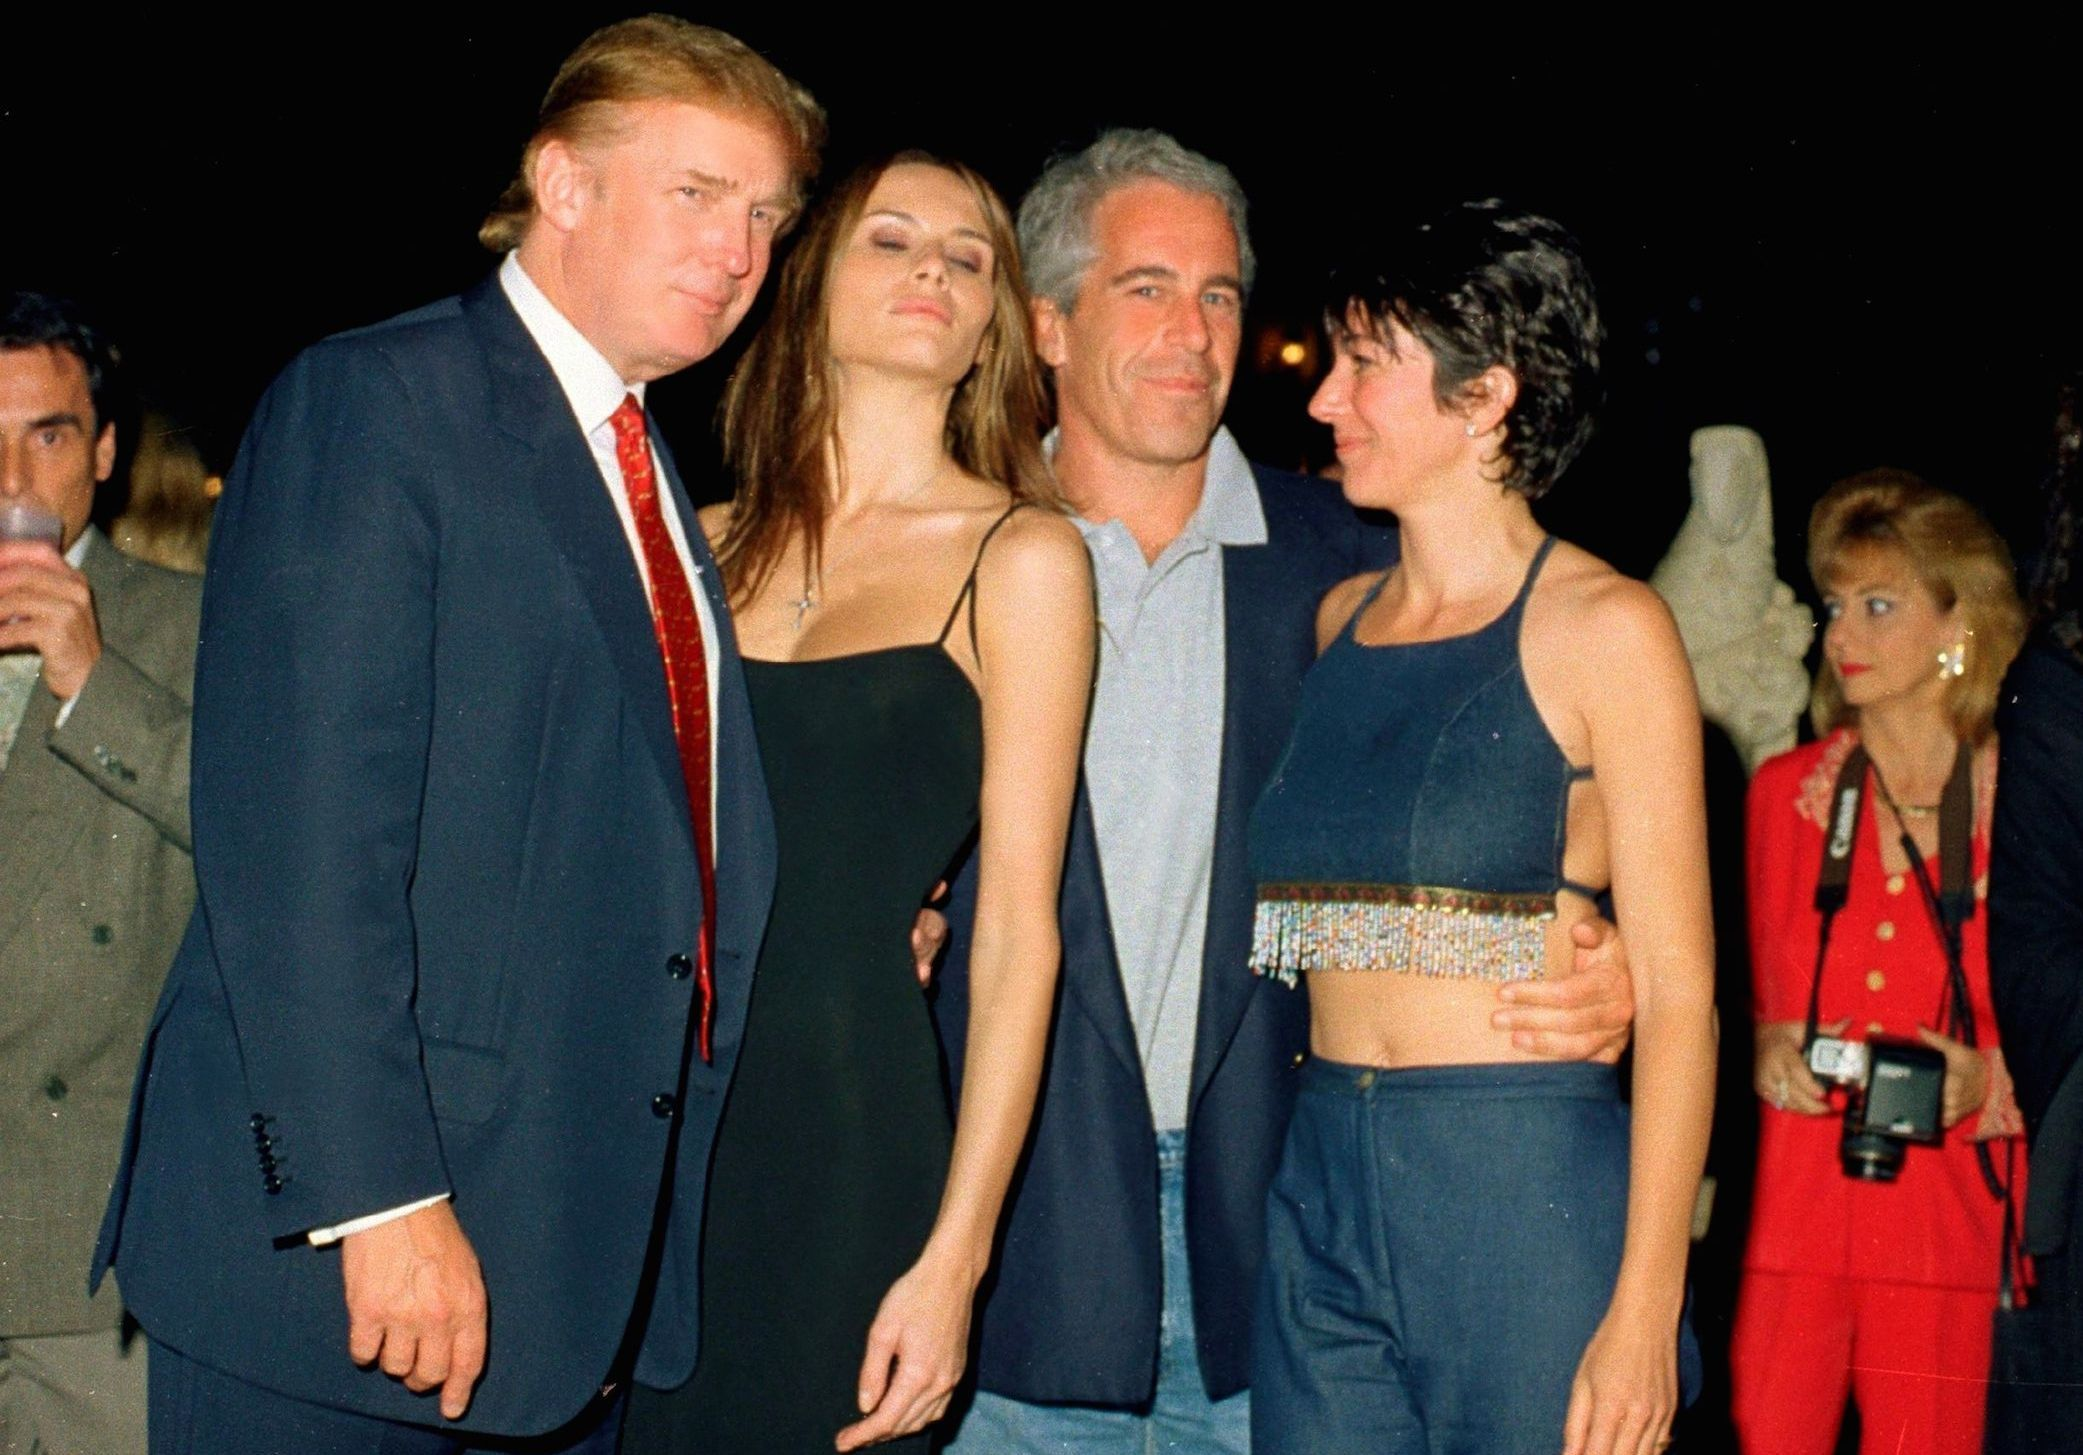 Jeffrey-Epstein-what-you-need-to-know-about-the-business